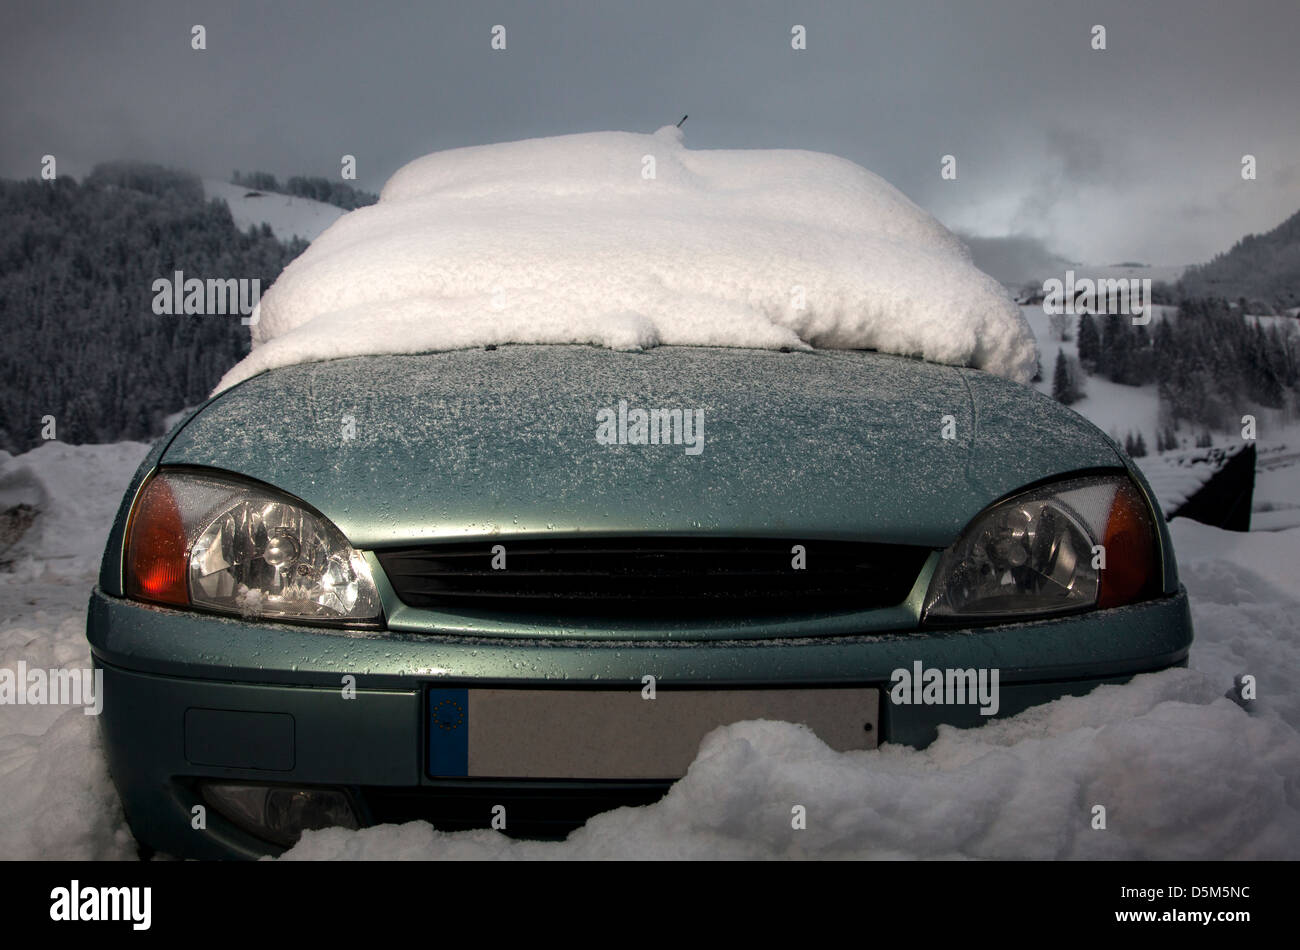 Car stuck in the snow with the windscreen covered, La Clusaz, France - Stock Image